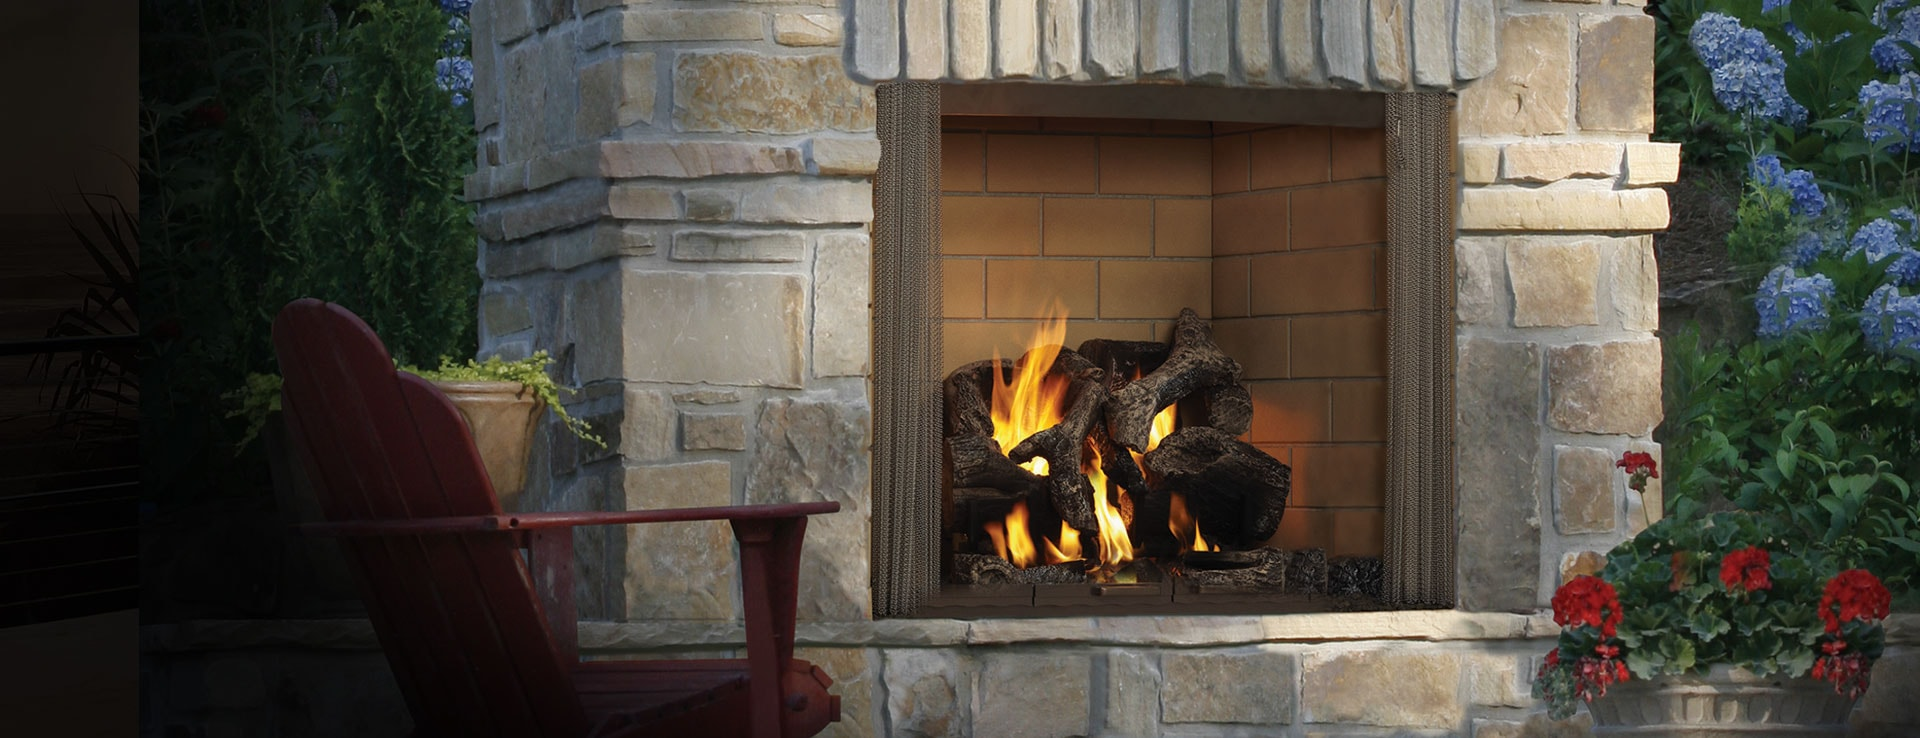 castlewood large outdoor wood fireplace heatilator